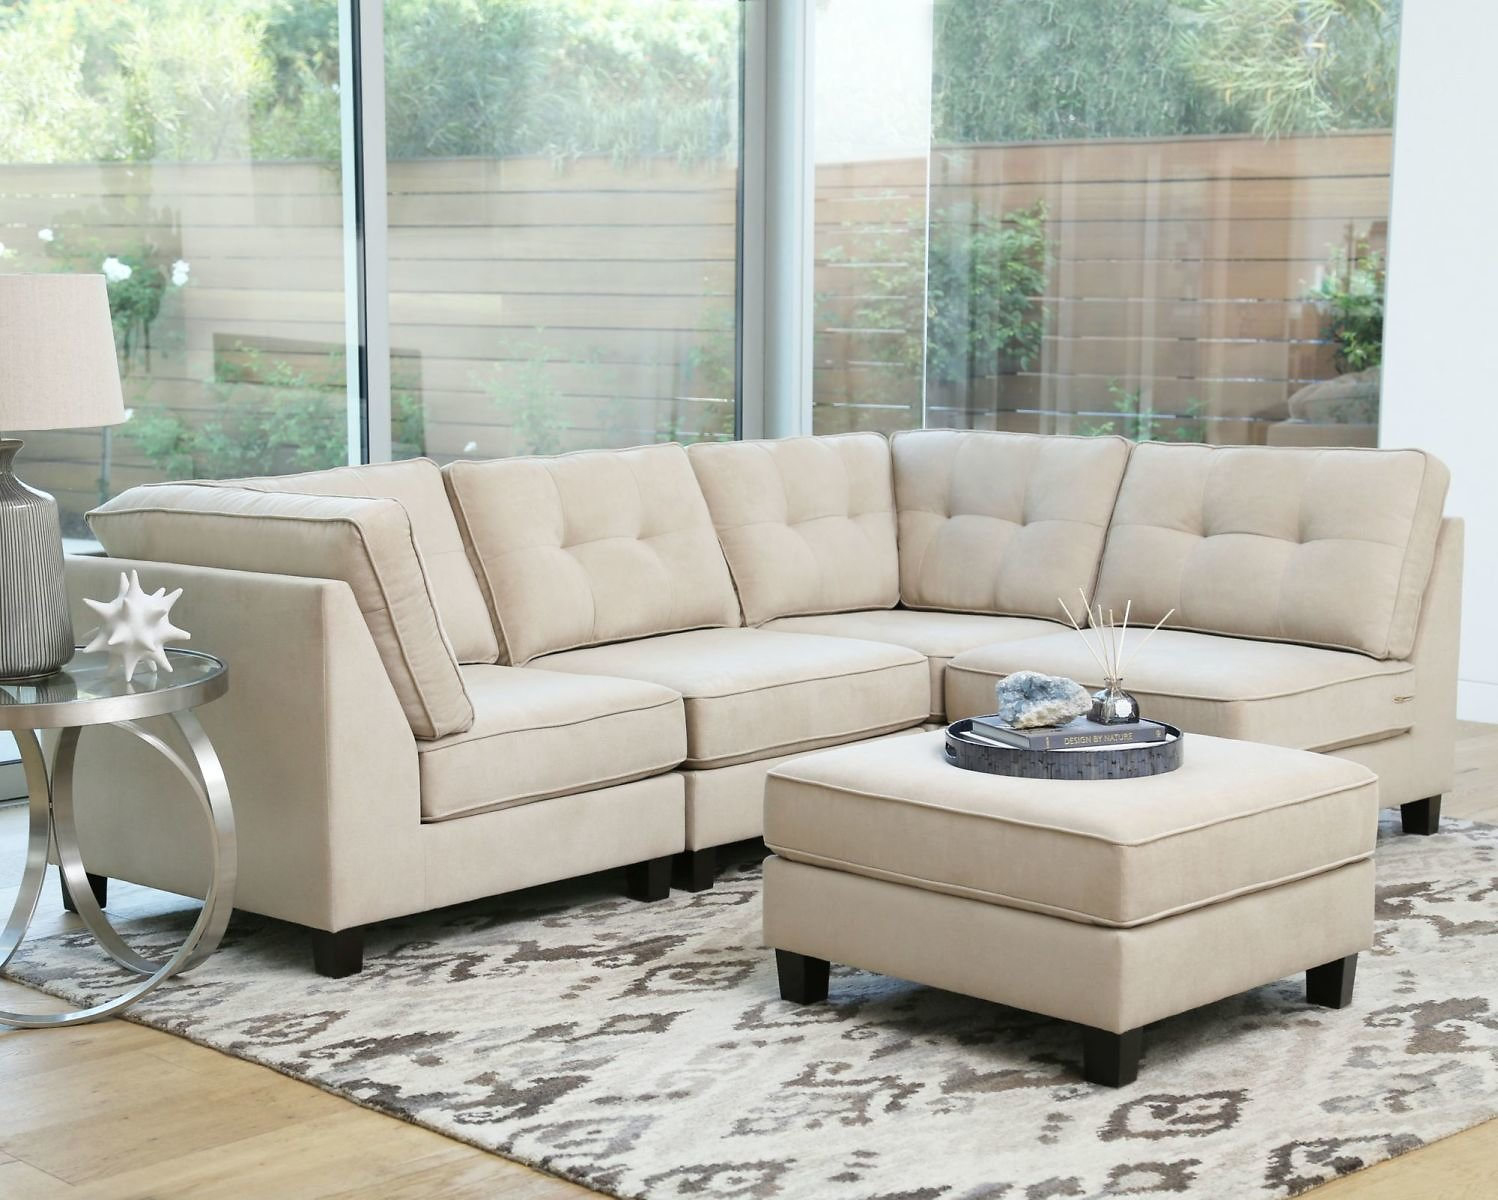 Up To 50% Off Fall Furniture Event - BJ's Wholesale Club